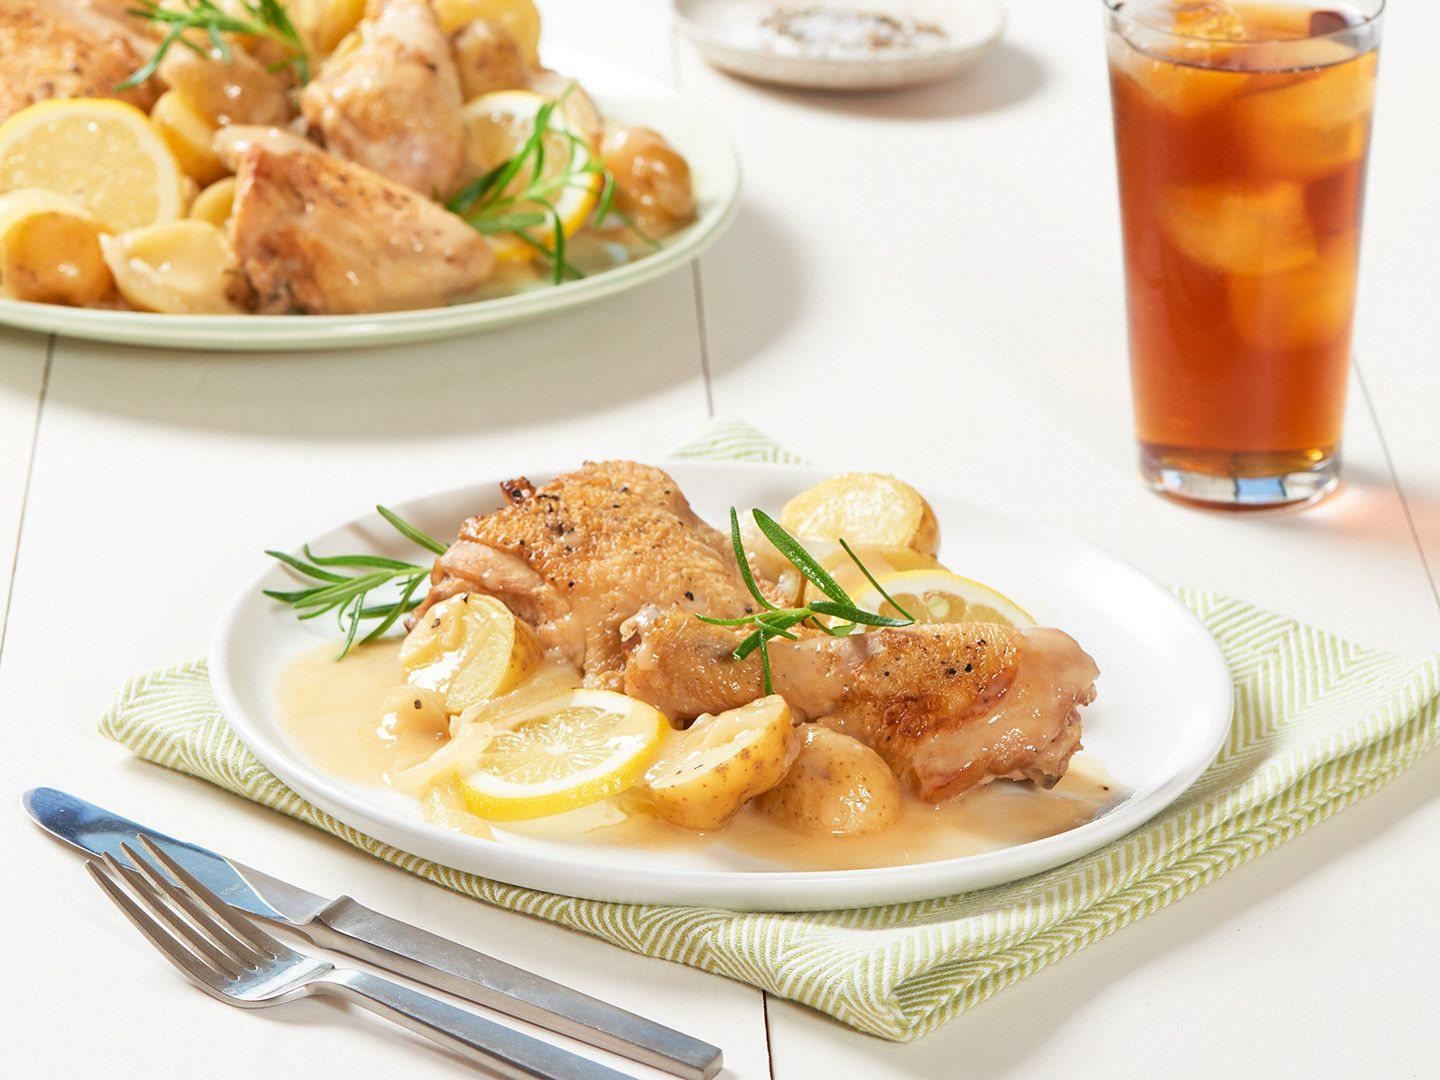 One-Pot Lemon-Braised Chicken with New Potatoes